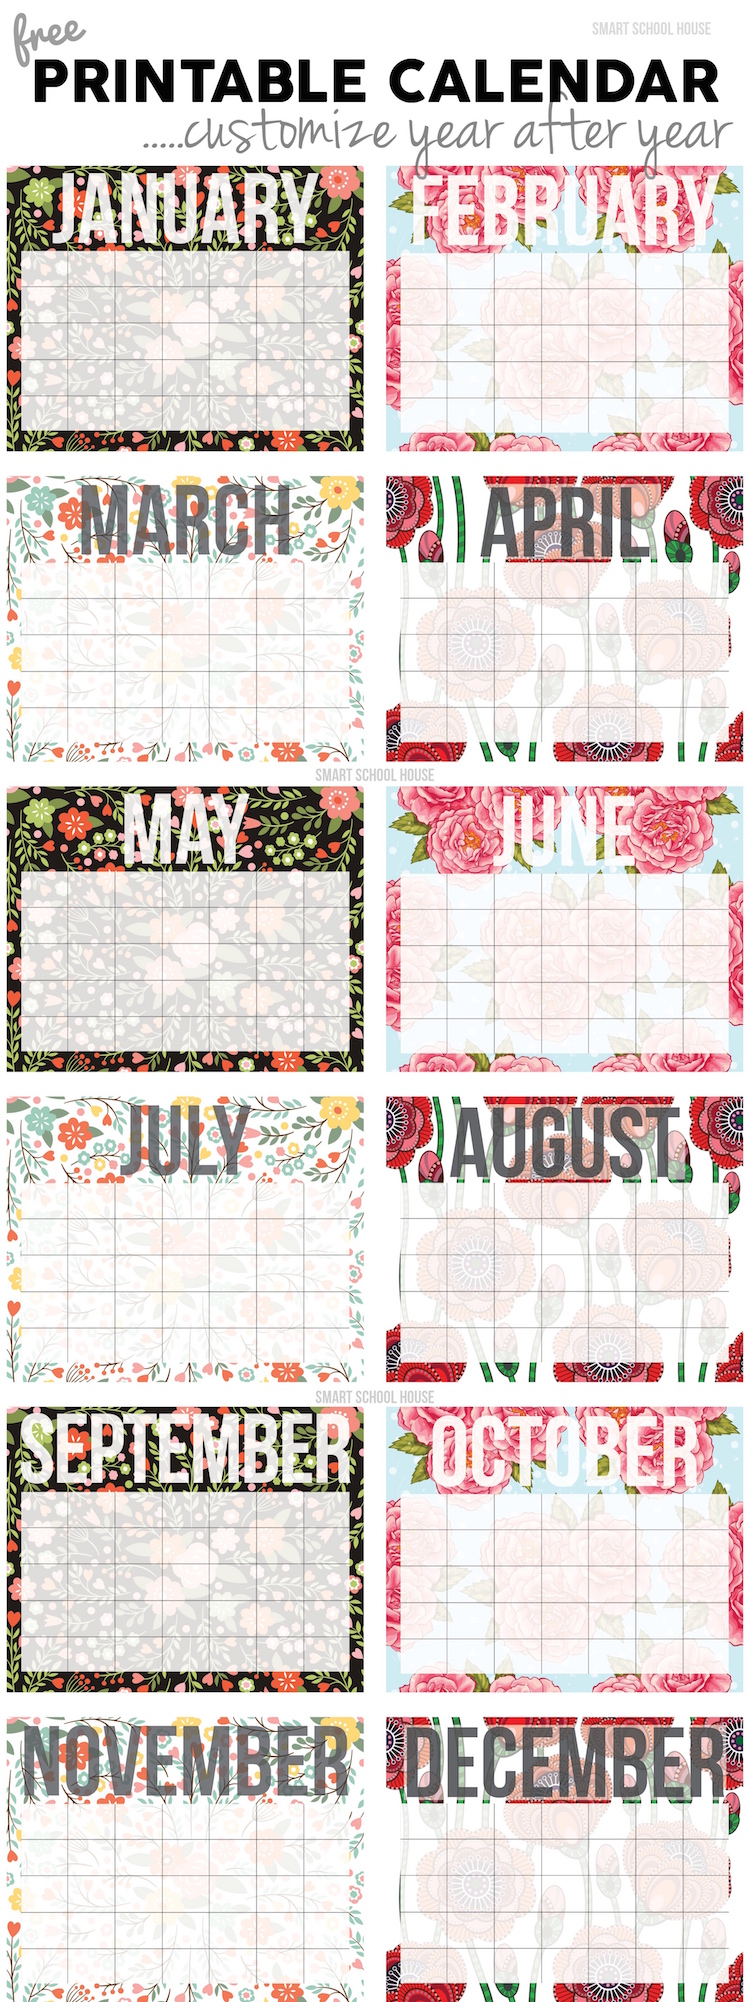 Free printable Calendar (customize year after year!)